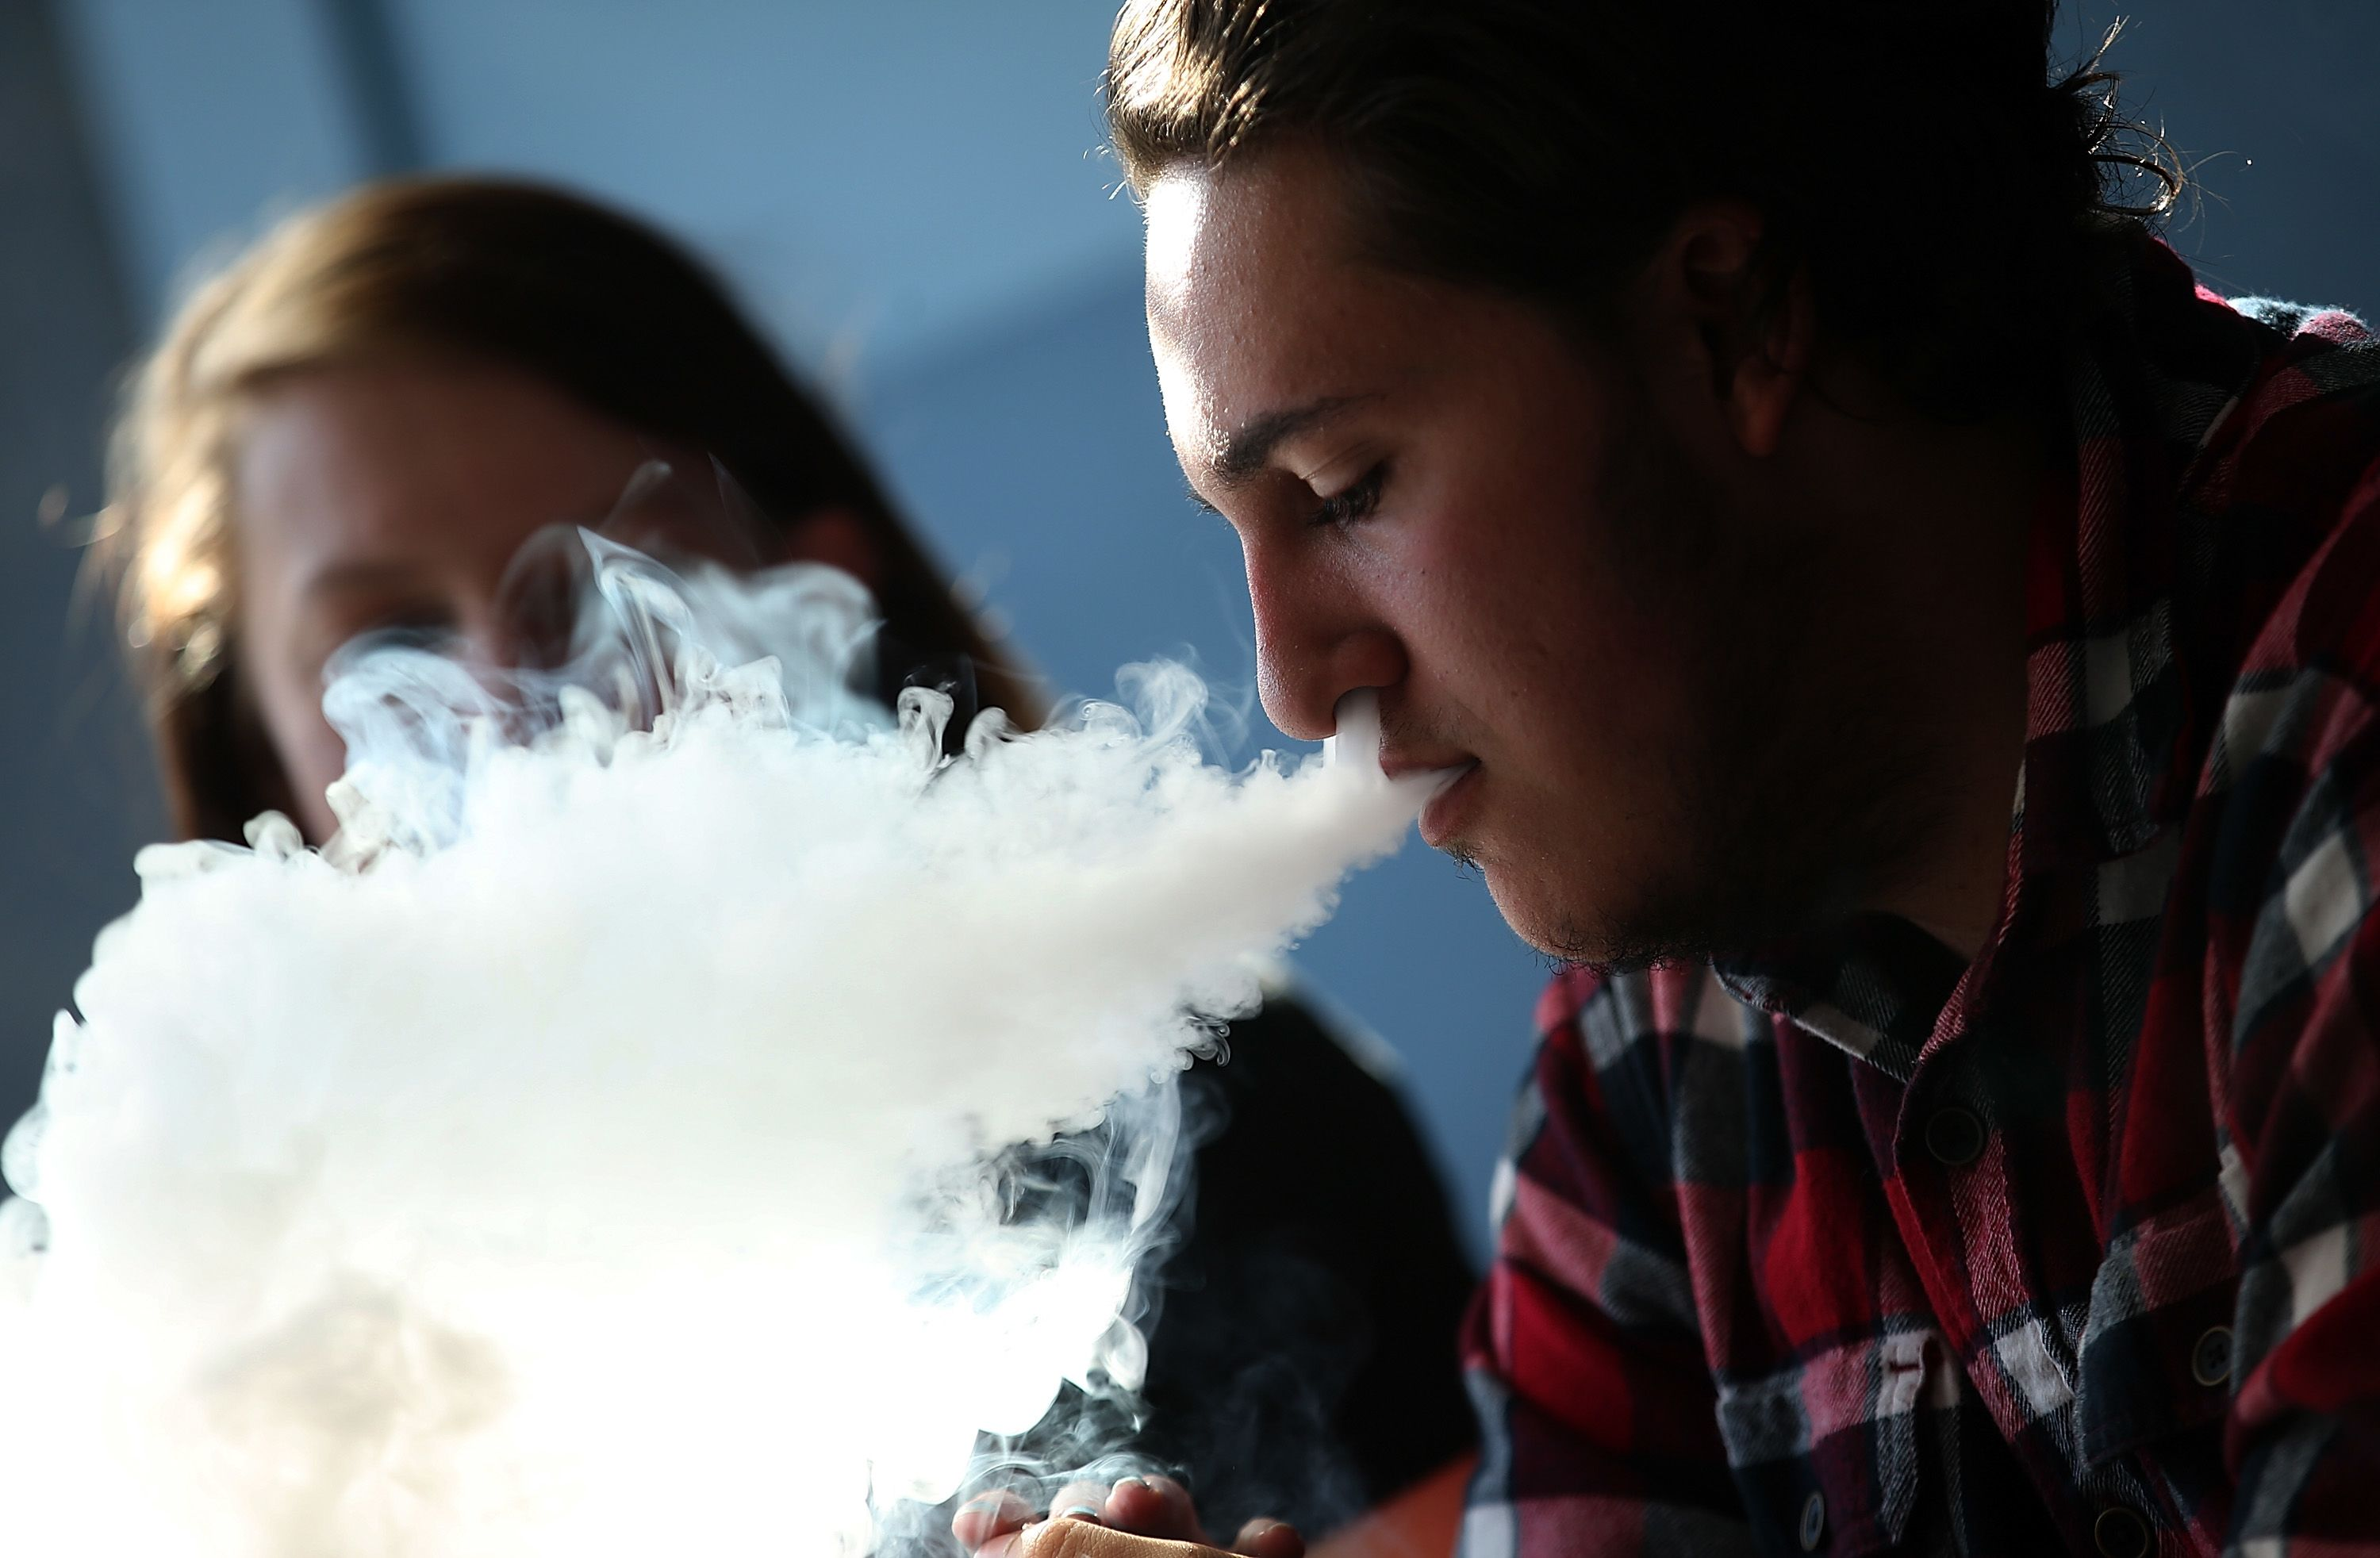 Federal judge orders FDA to begin review of e-cigarettes